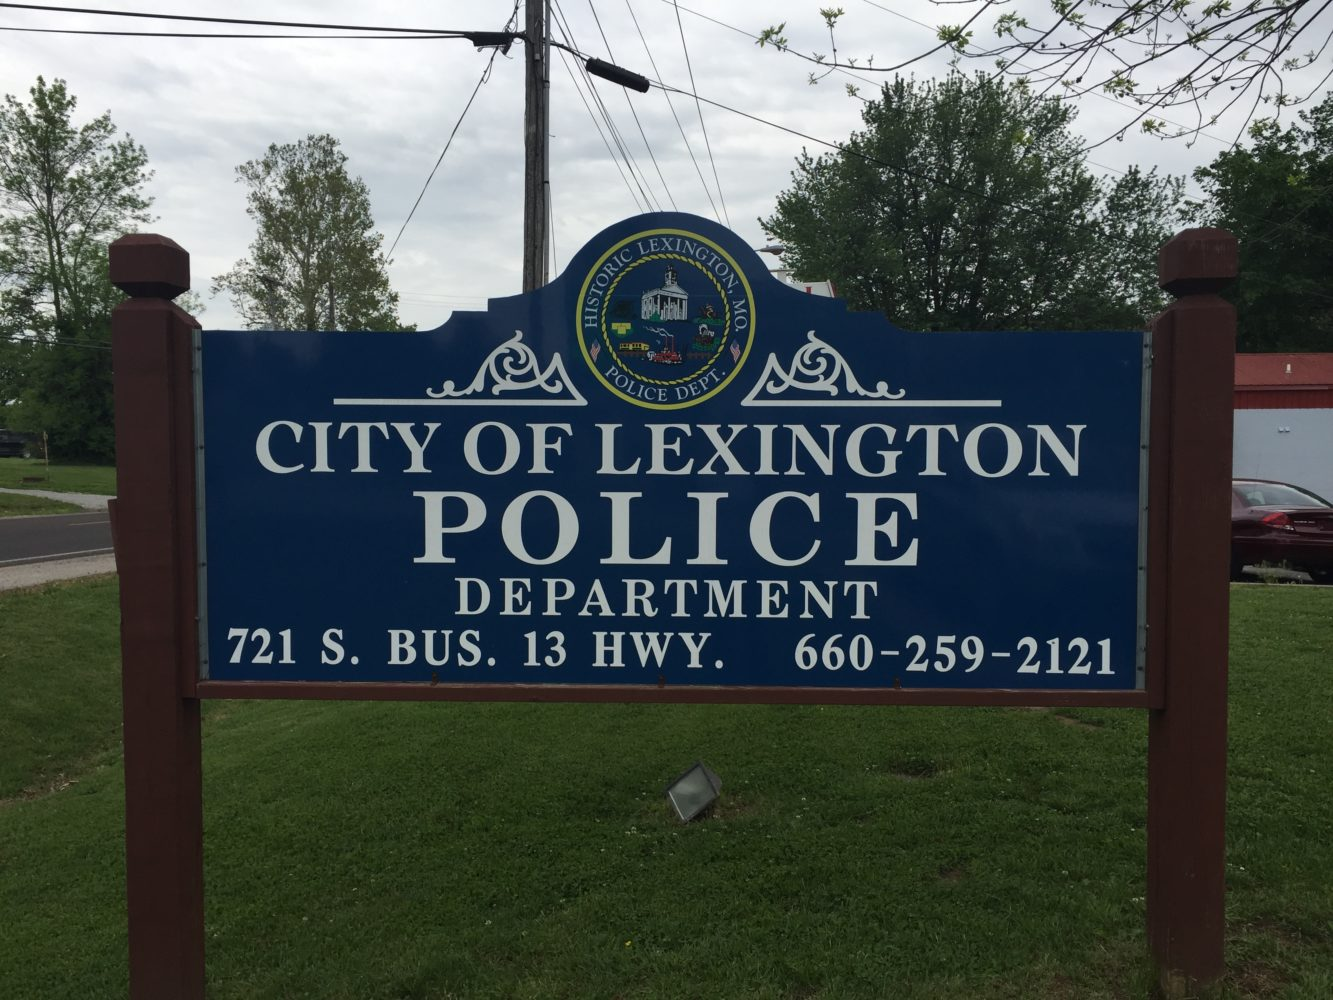 Lexington city officials mull neutralizing police department